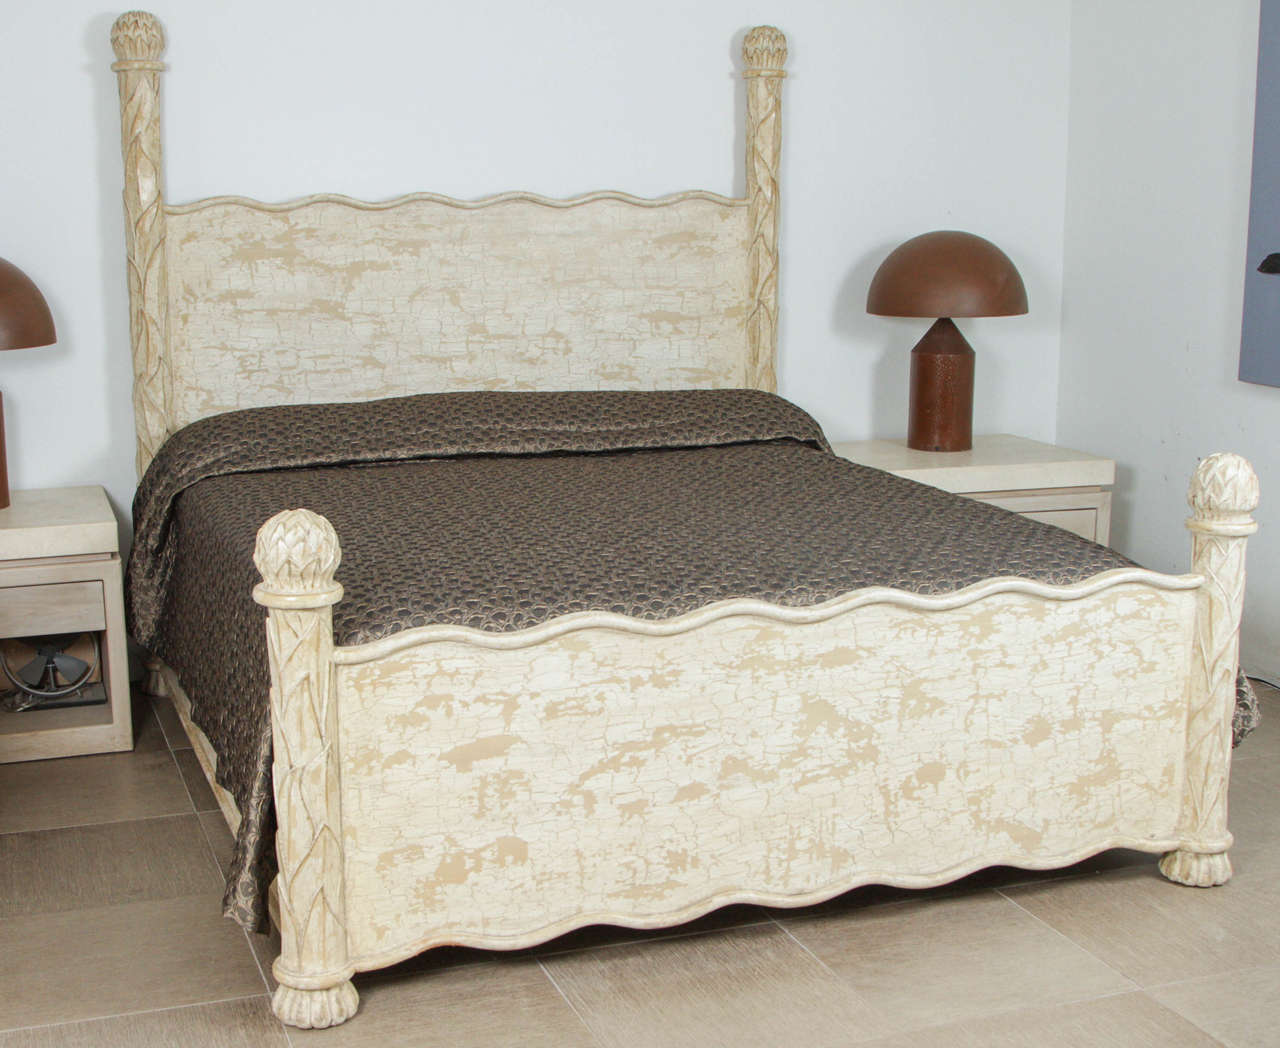 Carved wood bed frame with artichoke finials at stdibs